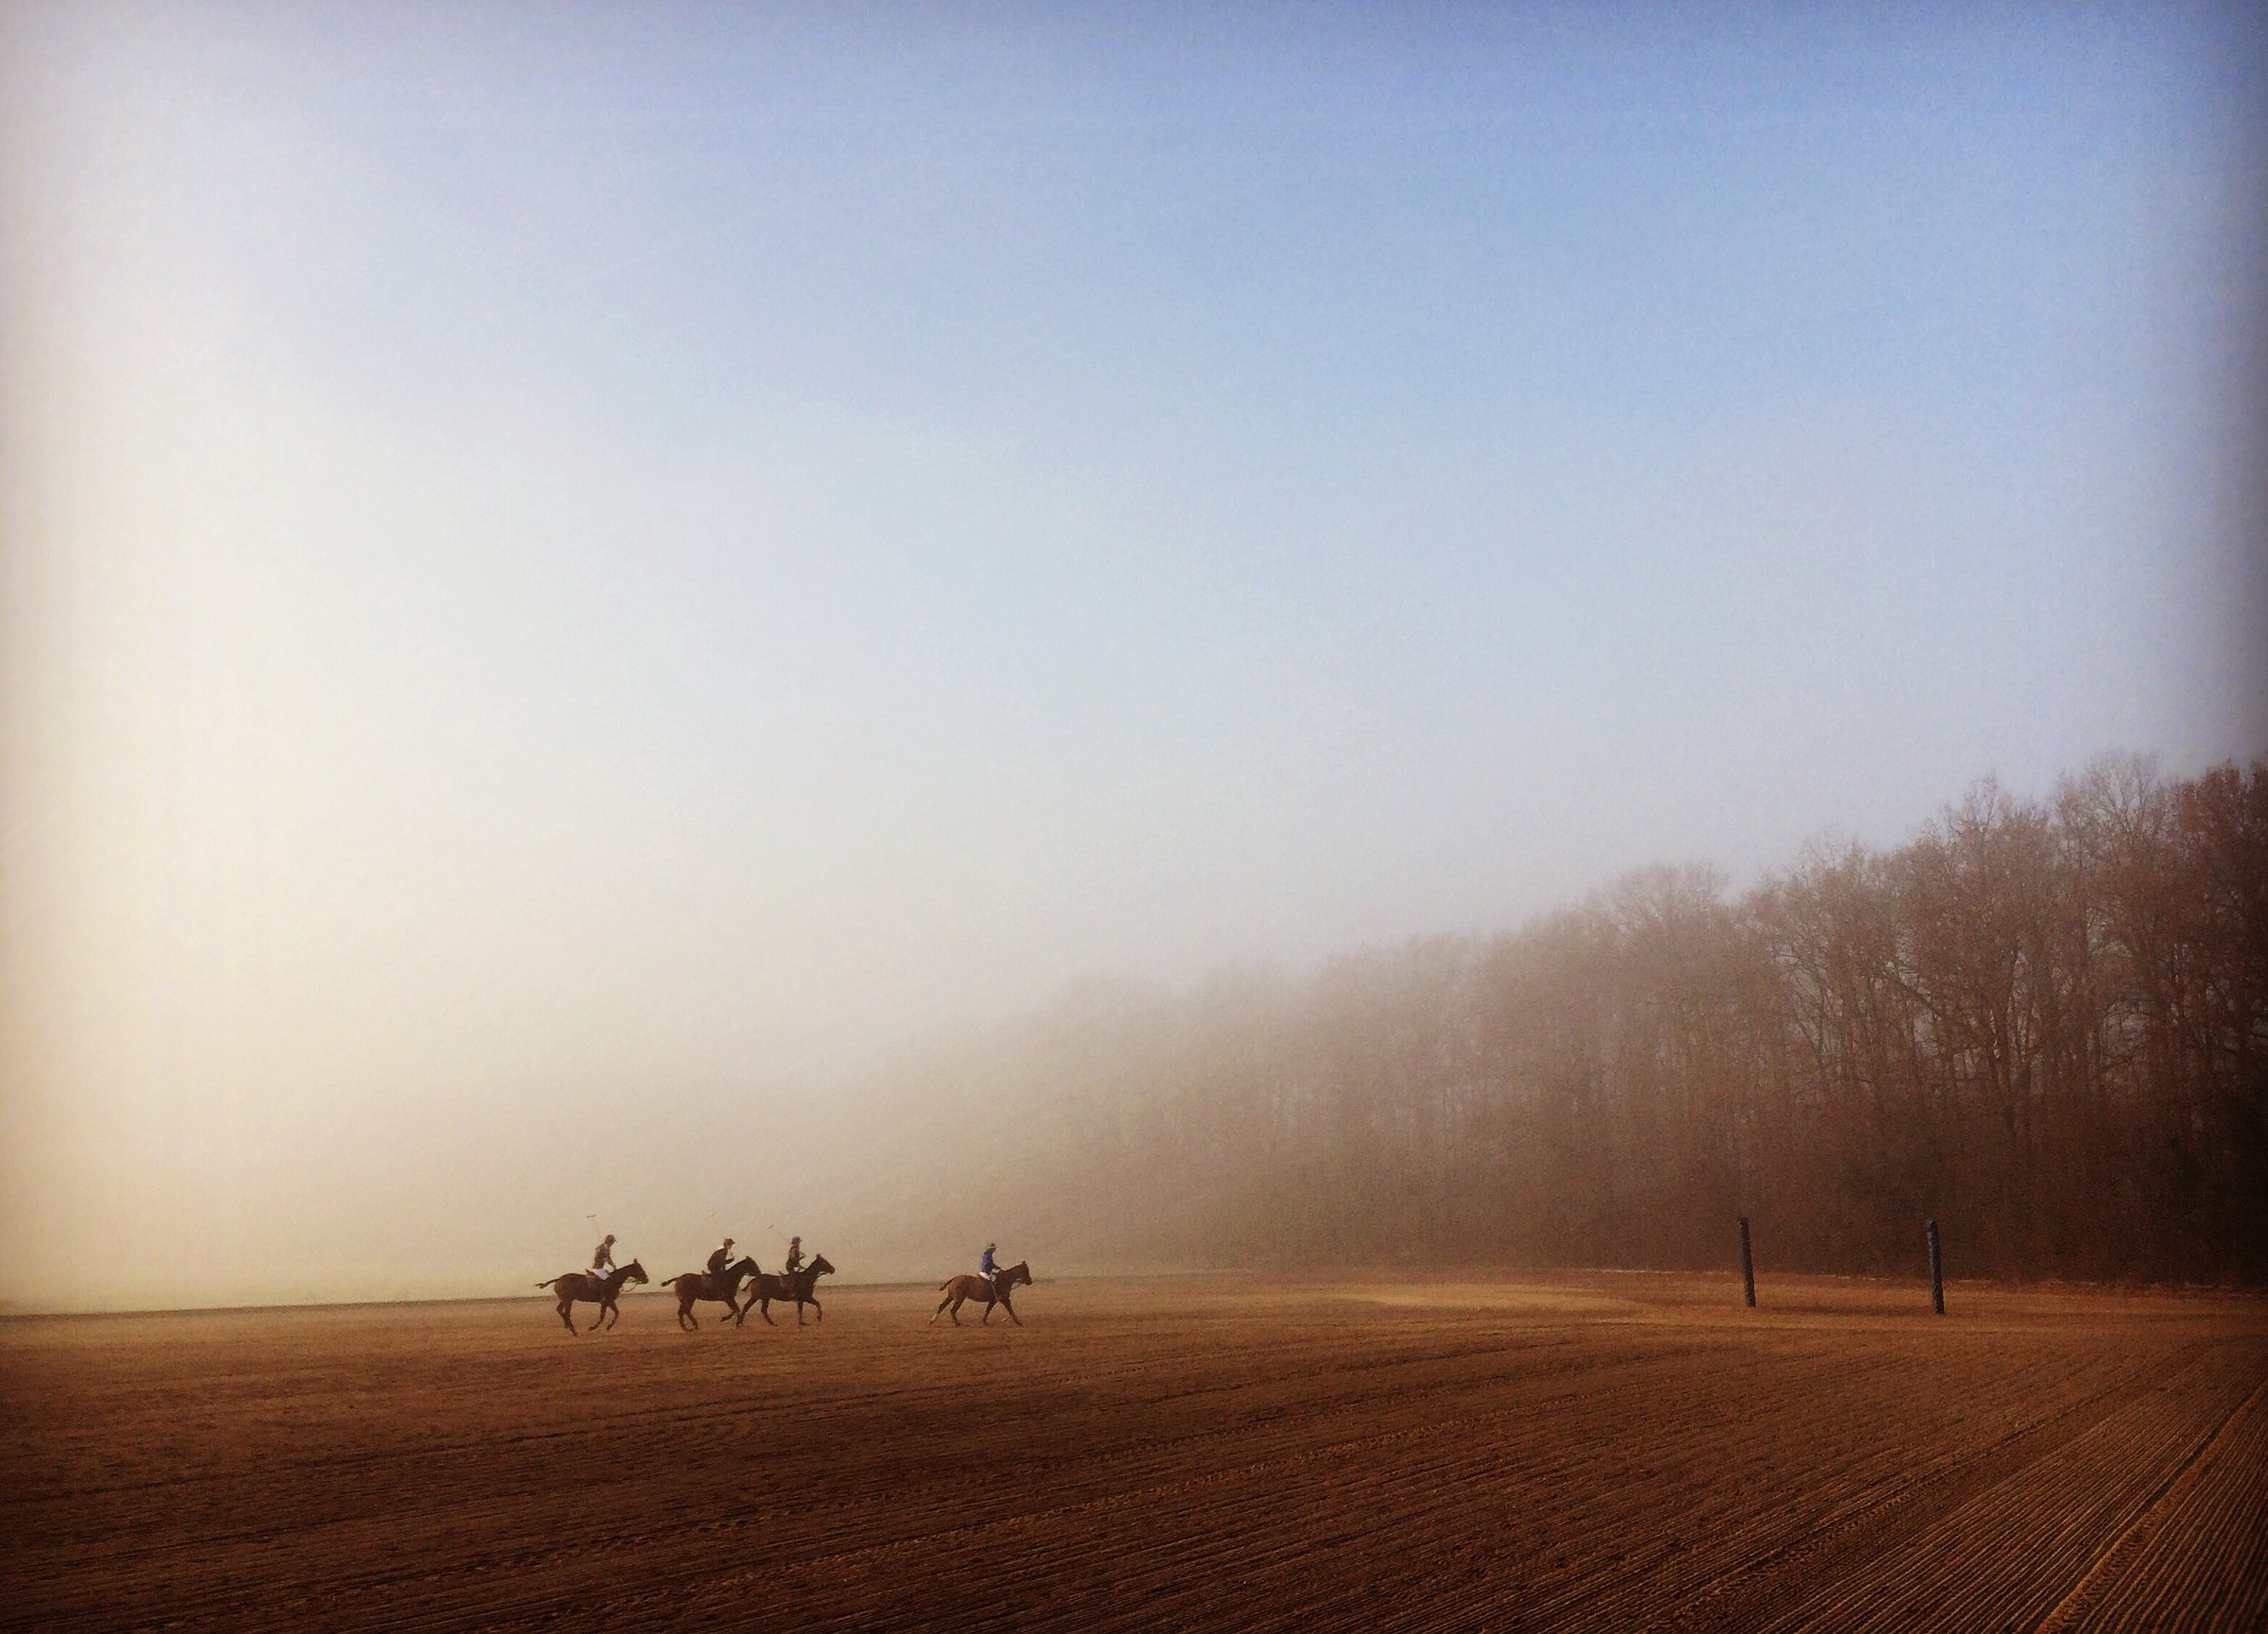 Entrainement matinal sur le terrain en sable du Polo Club du Domaine de Chantilly  Early training on the sand field of Chantilly Polo Club